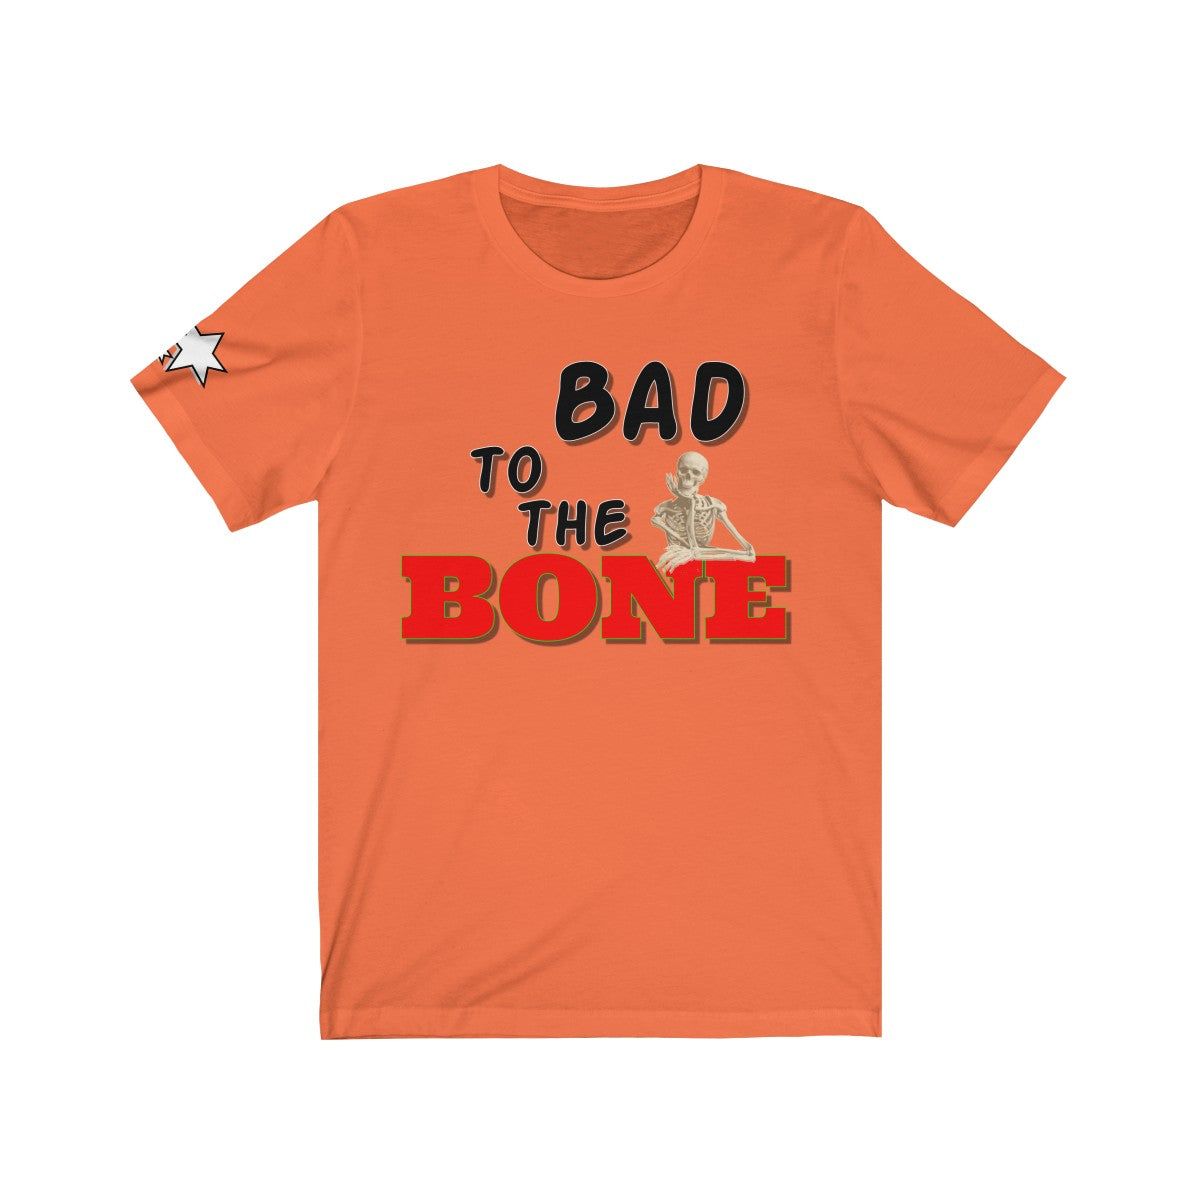 Unisex Jersey Short Sleeve Tee - Bad to the Bone II